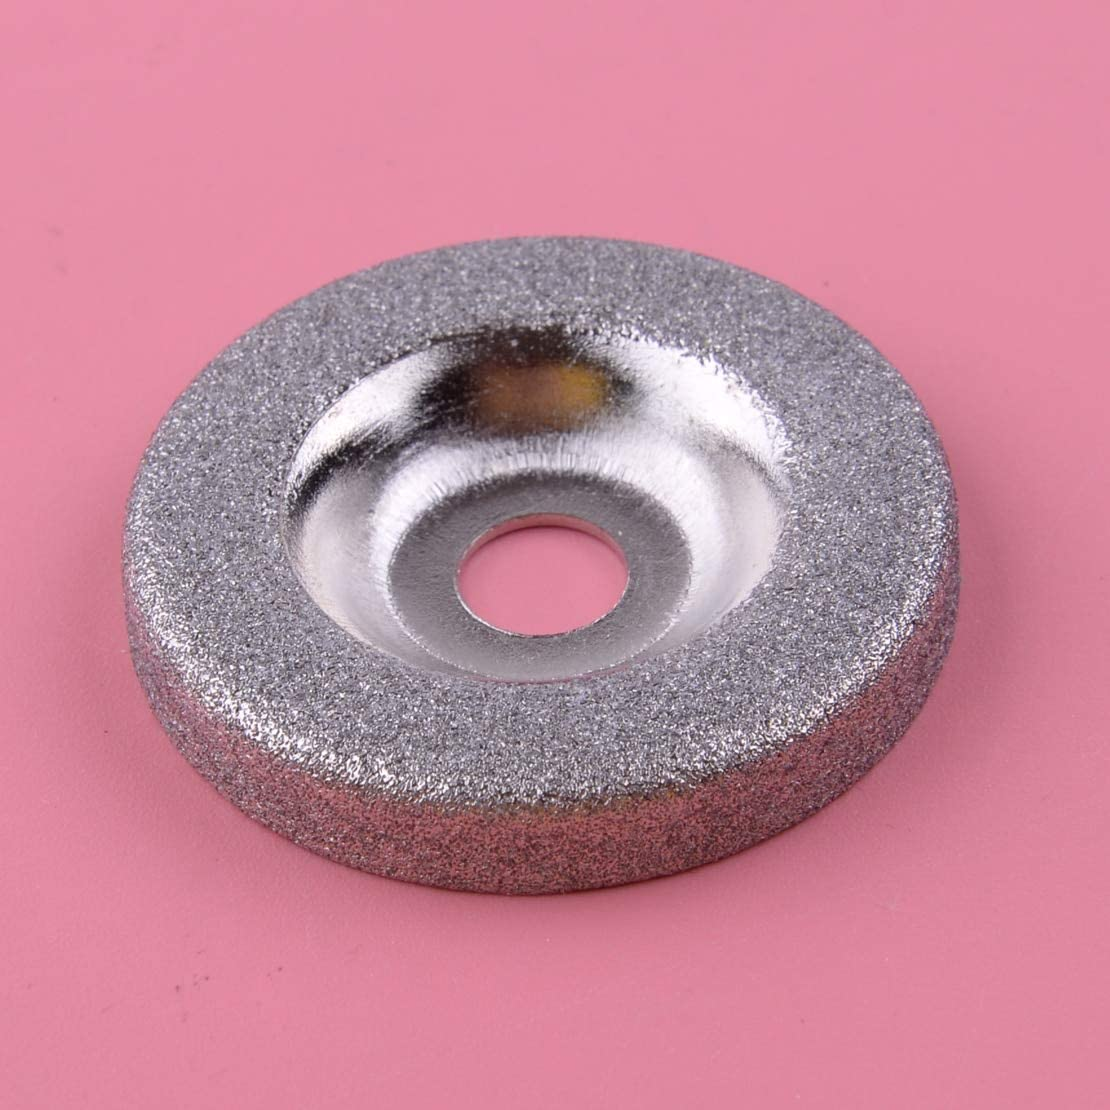 XKMY 50mm Diamond San Jose Mall Grinding Wheel Circle fo Fit Metal Direct sale of manufacturer Disc Silver